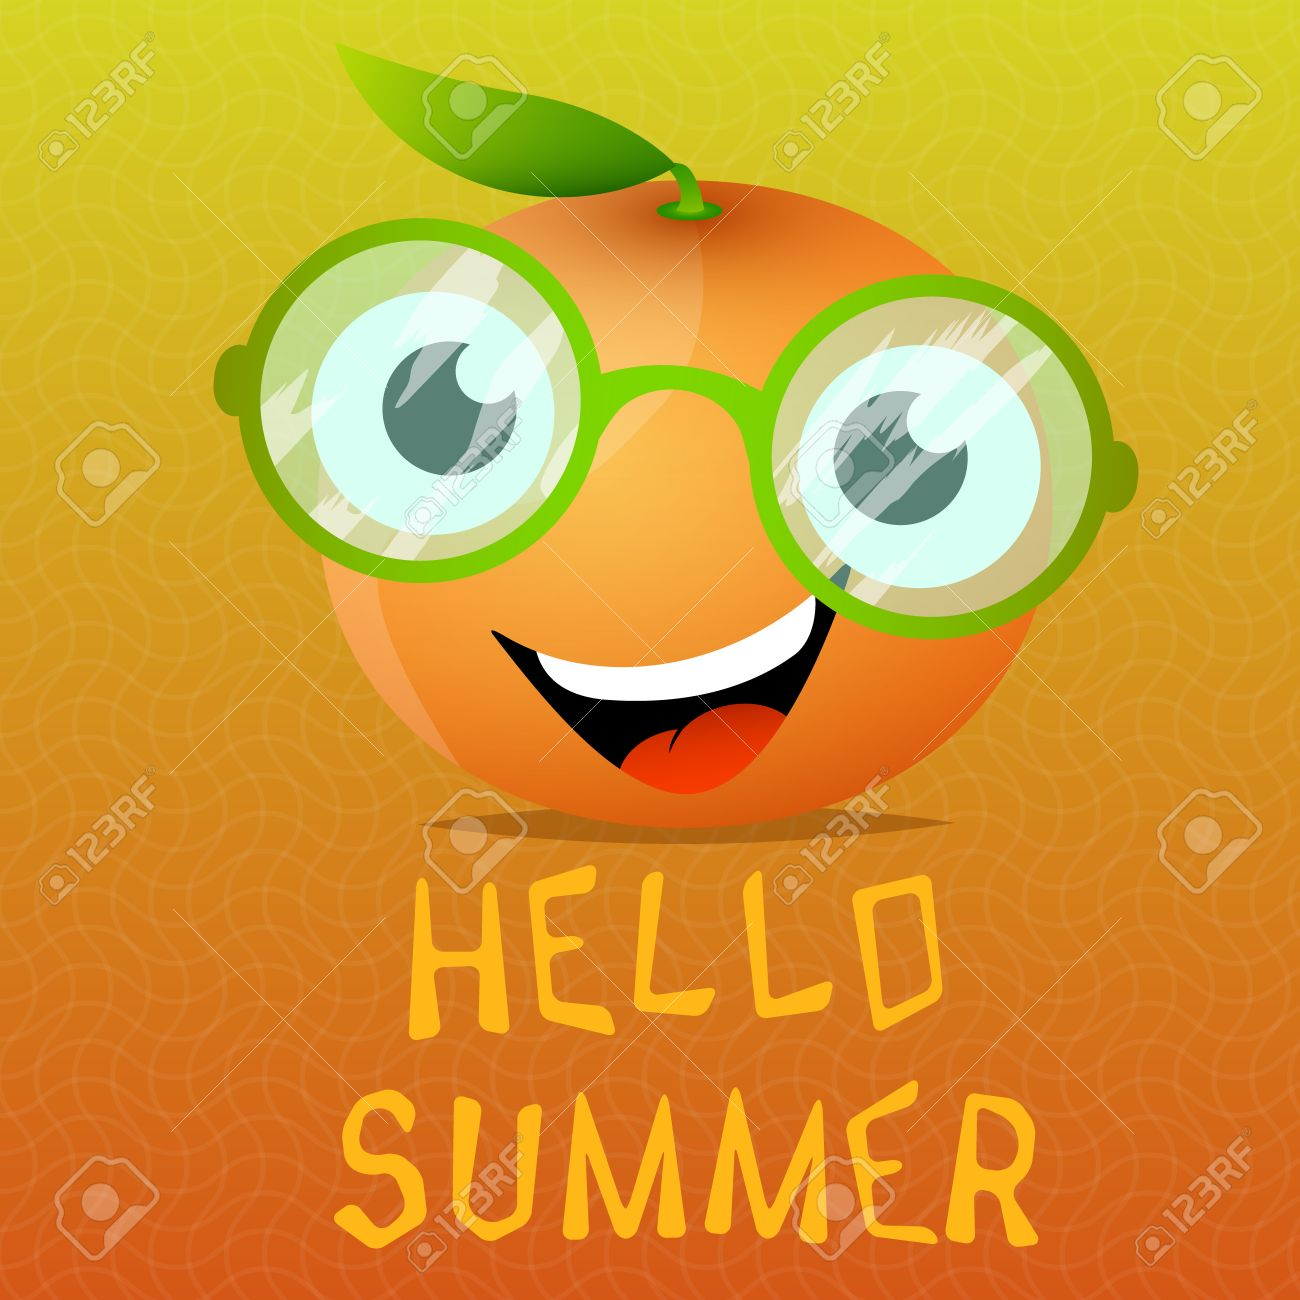 Incroyable Funny Cartoon Orange In The Eyeglasses.Citrus Fruit For Juice Advertising .Hello  Summer.